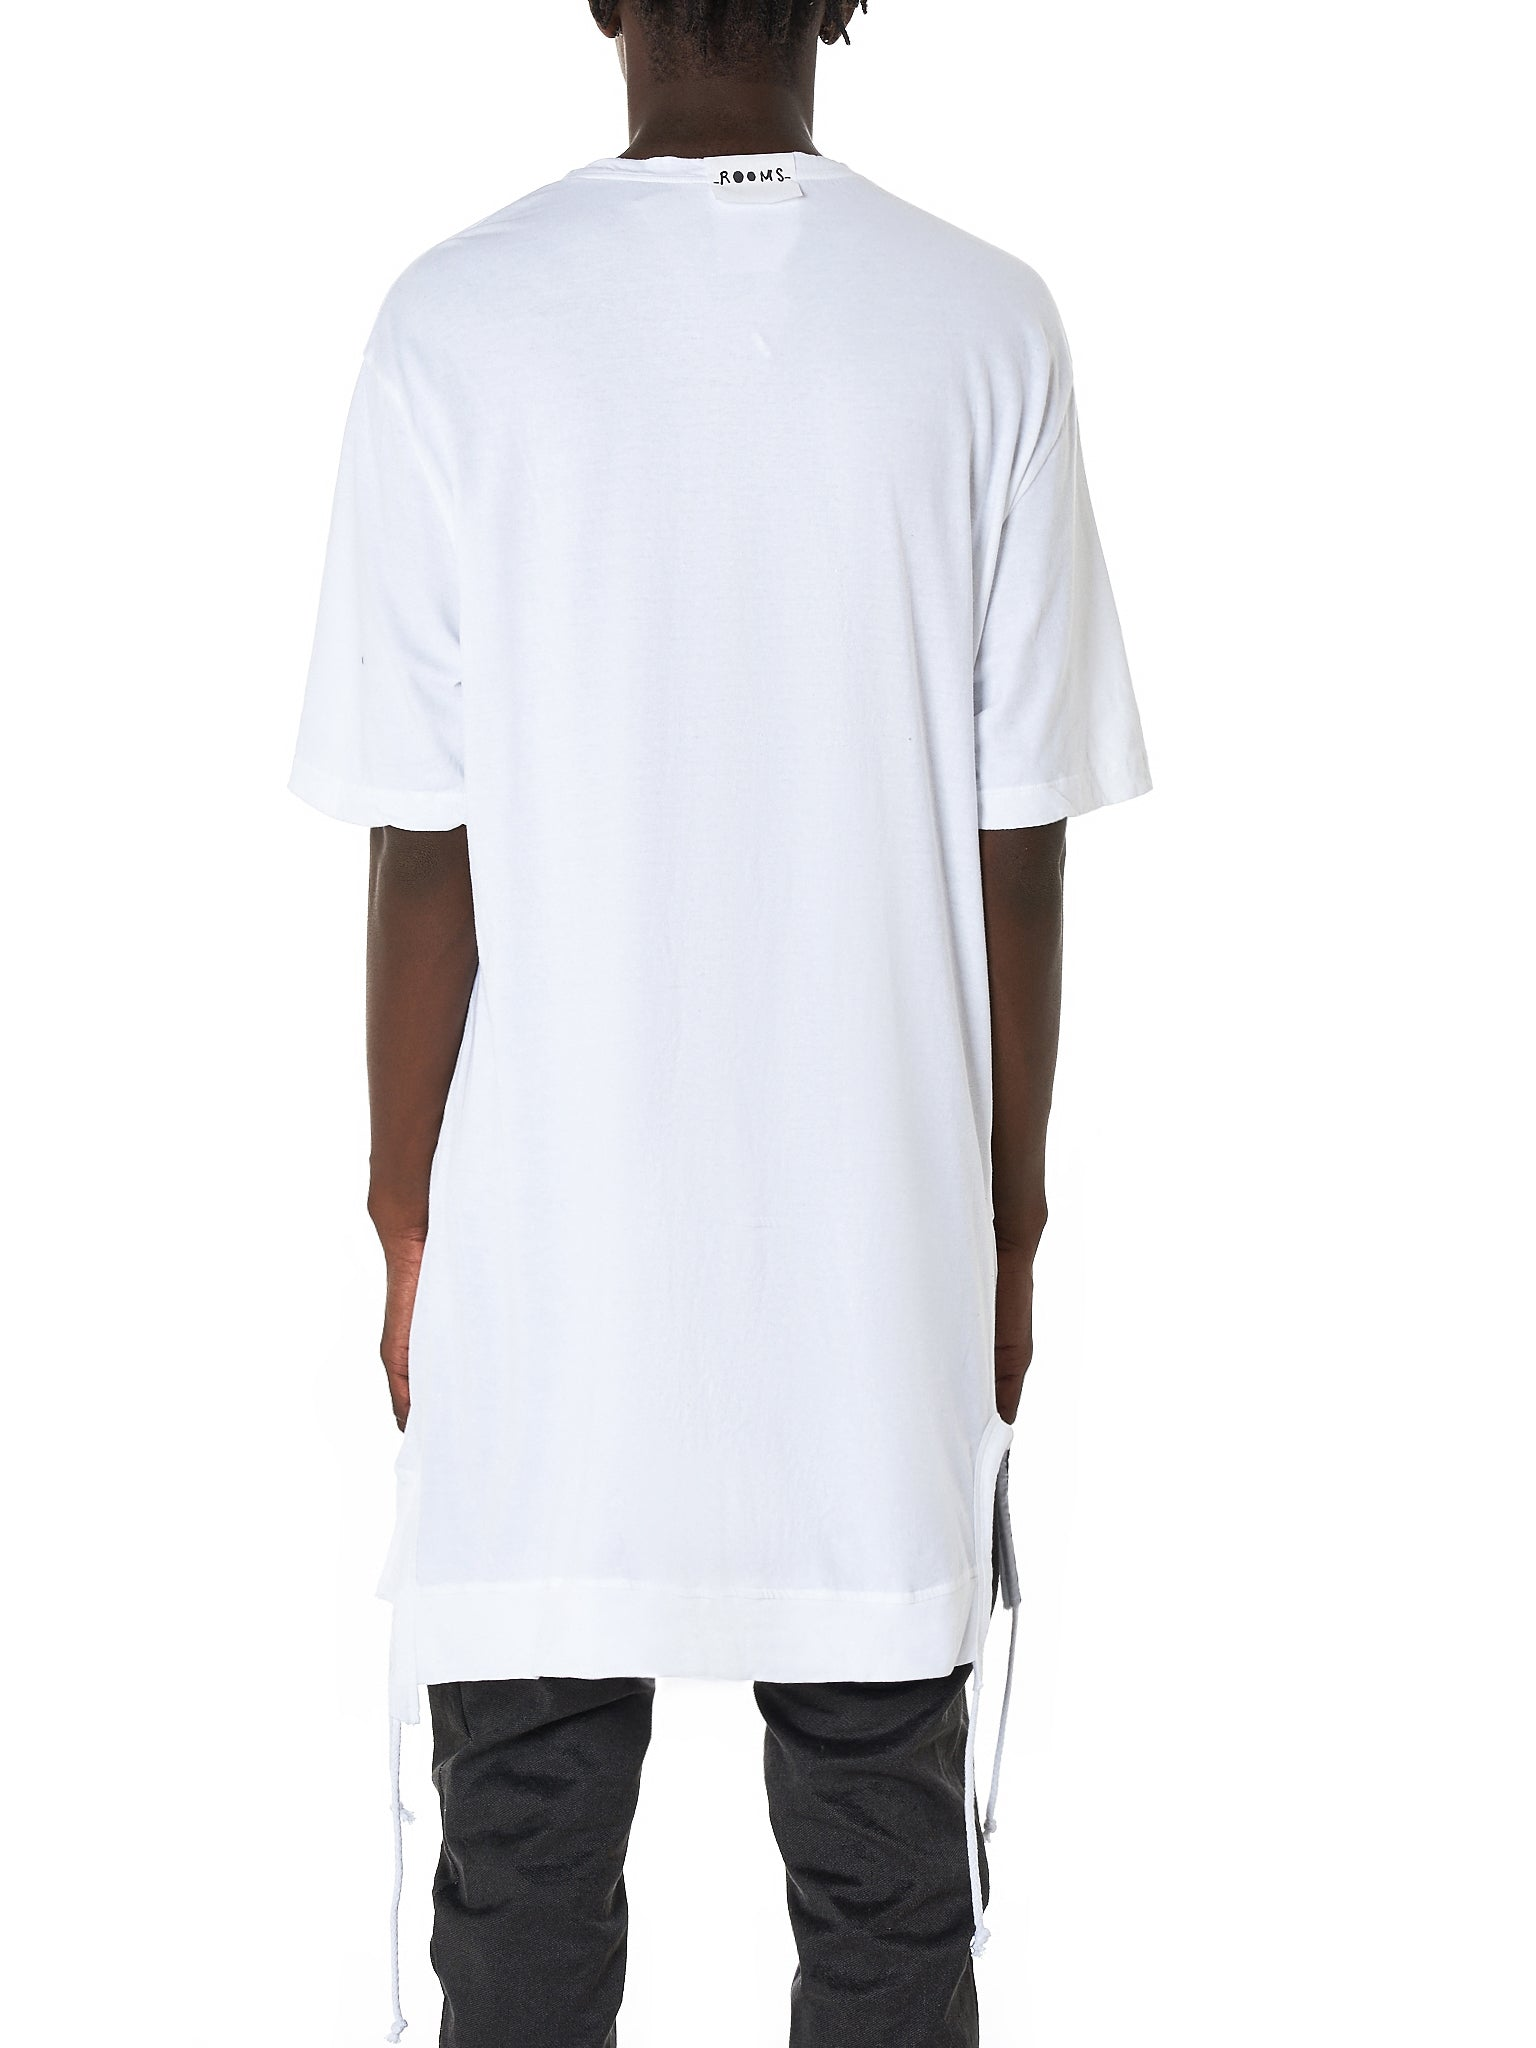 Lost & Found Rooms Tee Shirt - Hlorenzo Back